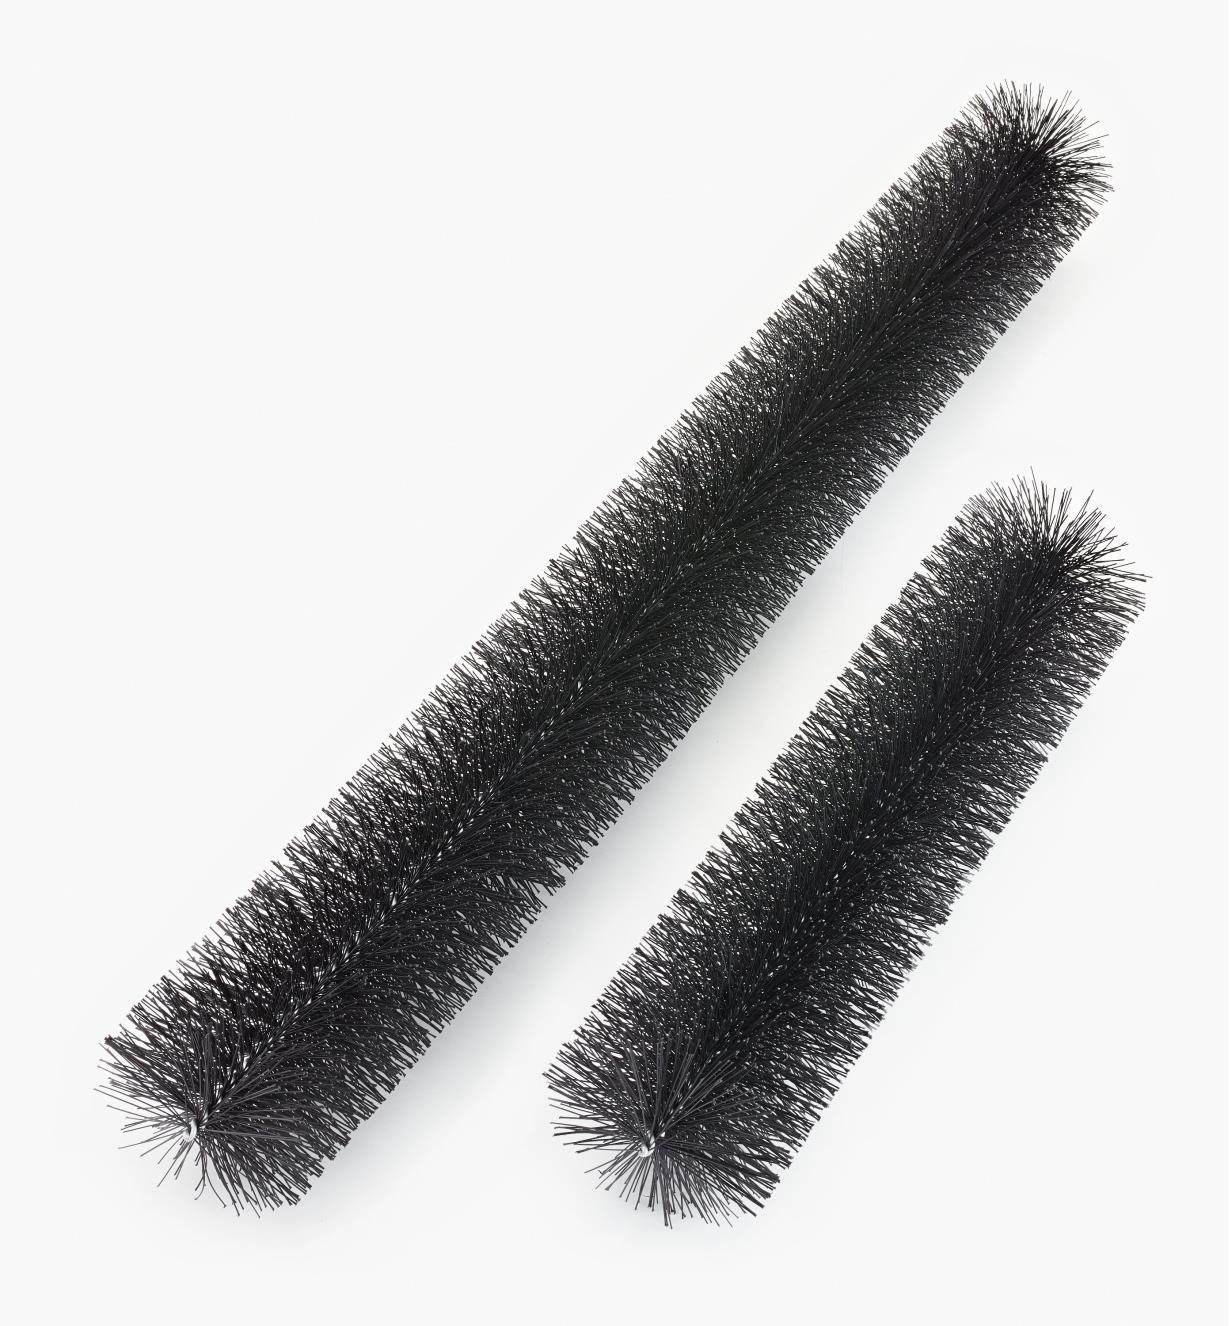 CA304 - Gutter Brush, 15' Kit